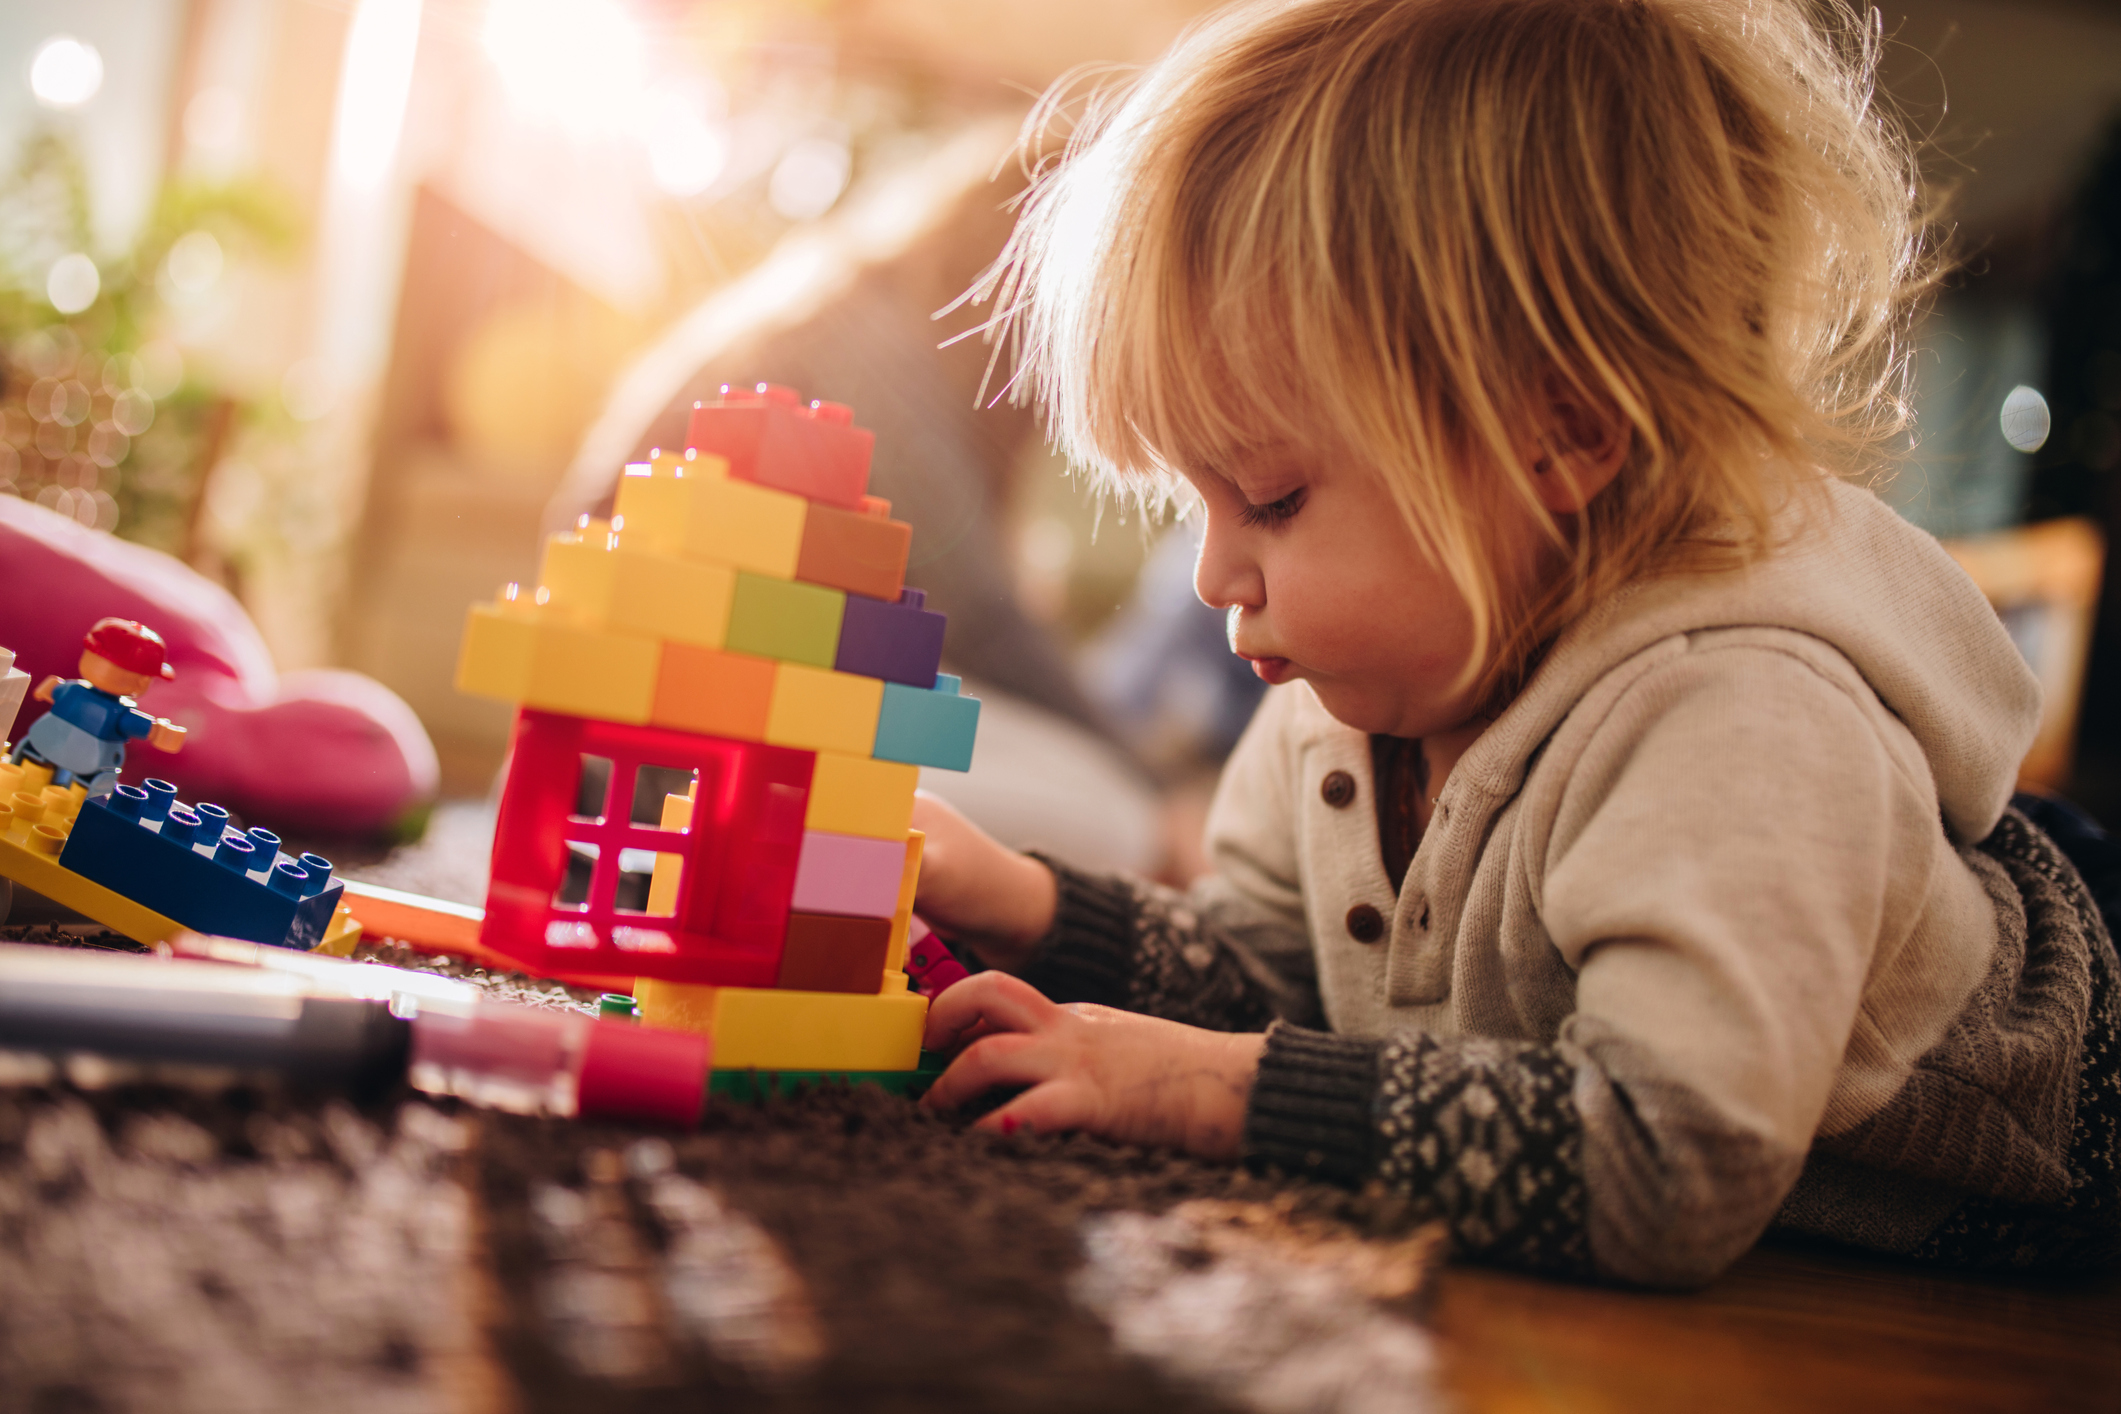 Cute kid stacking toy blocks while relaxing on the floor at home. There are people in the background.